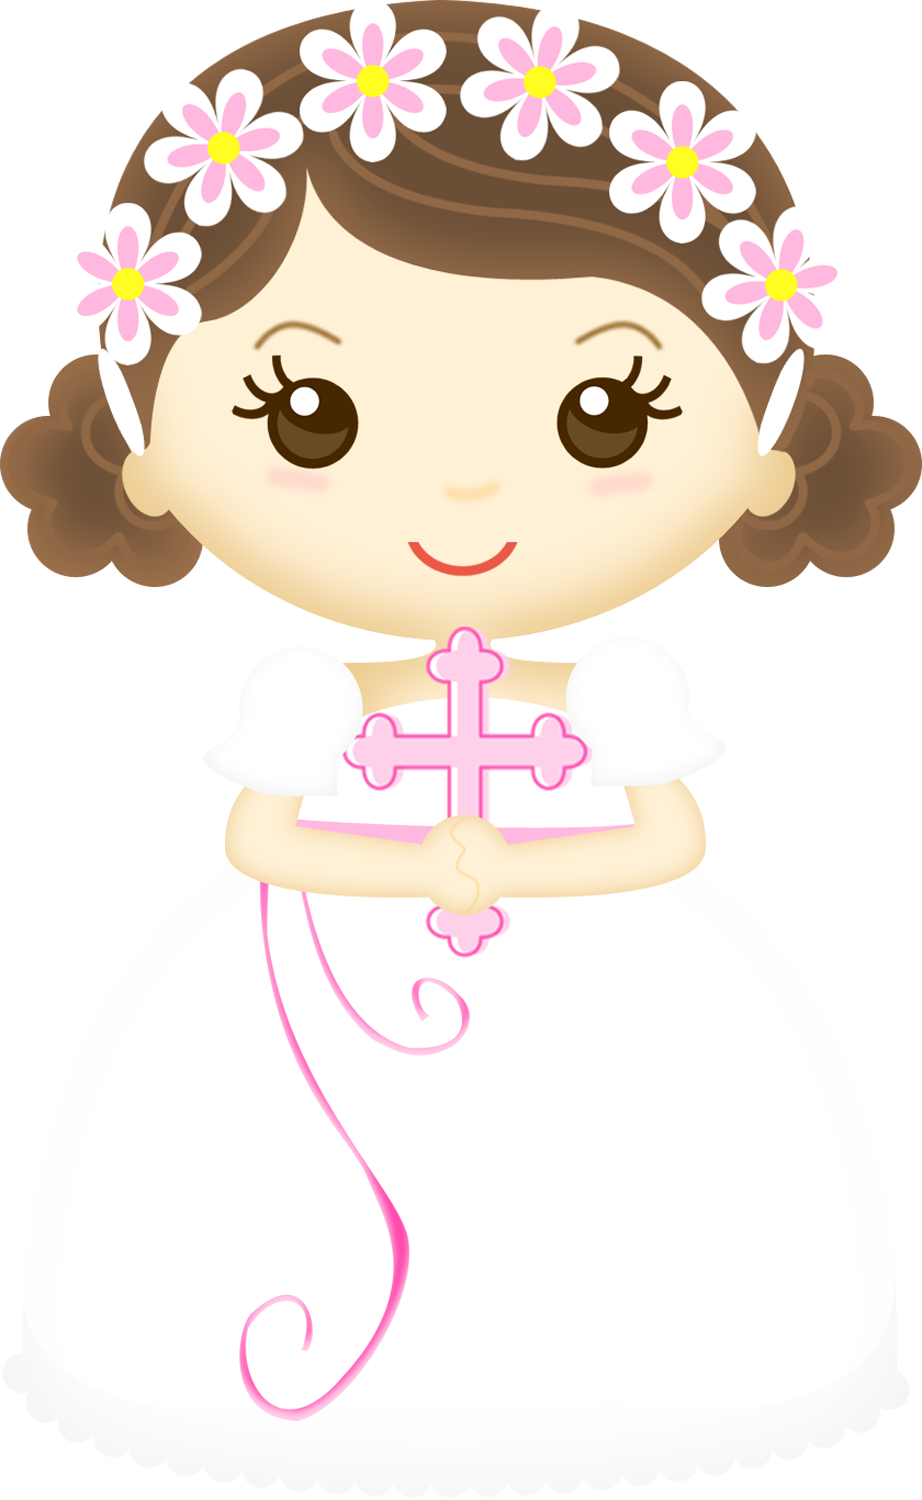 Pin by Monique's Board on First Holy Communion | Pinterest ...